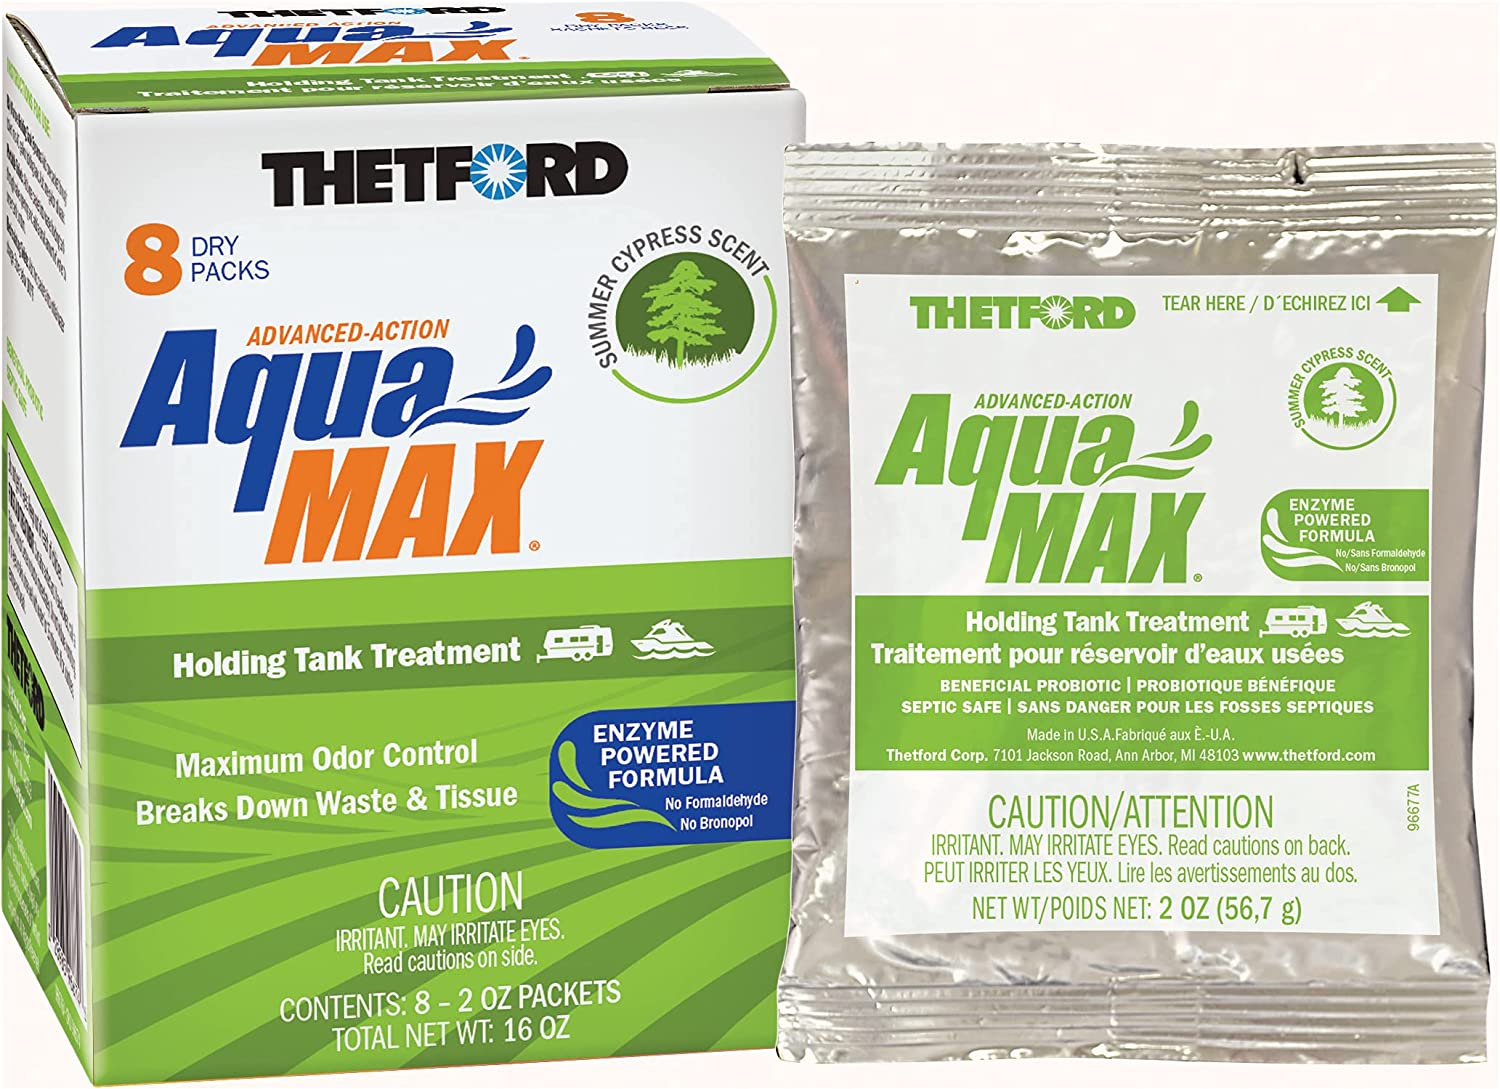 Thetford AquaMAX Summer Cypress New color Scent NEW before selling Holding Treatment Tank RV